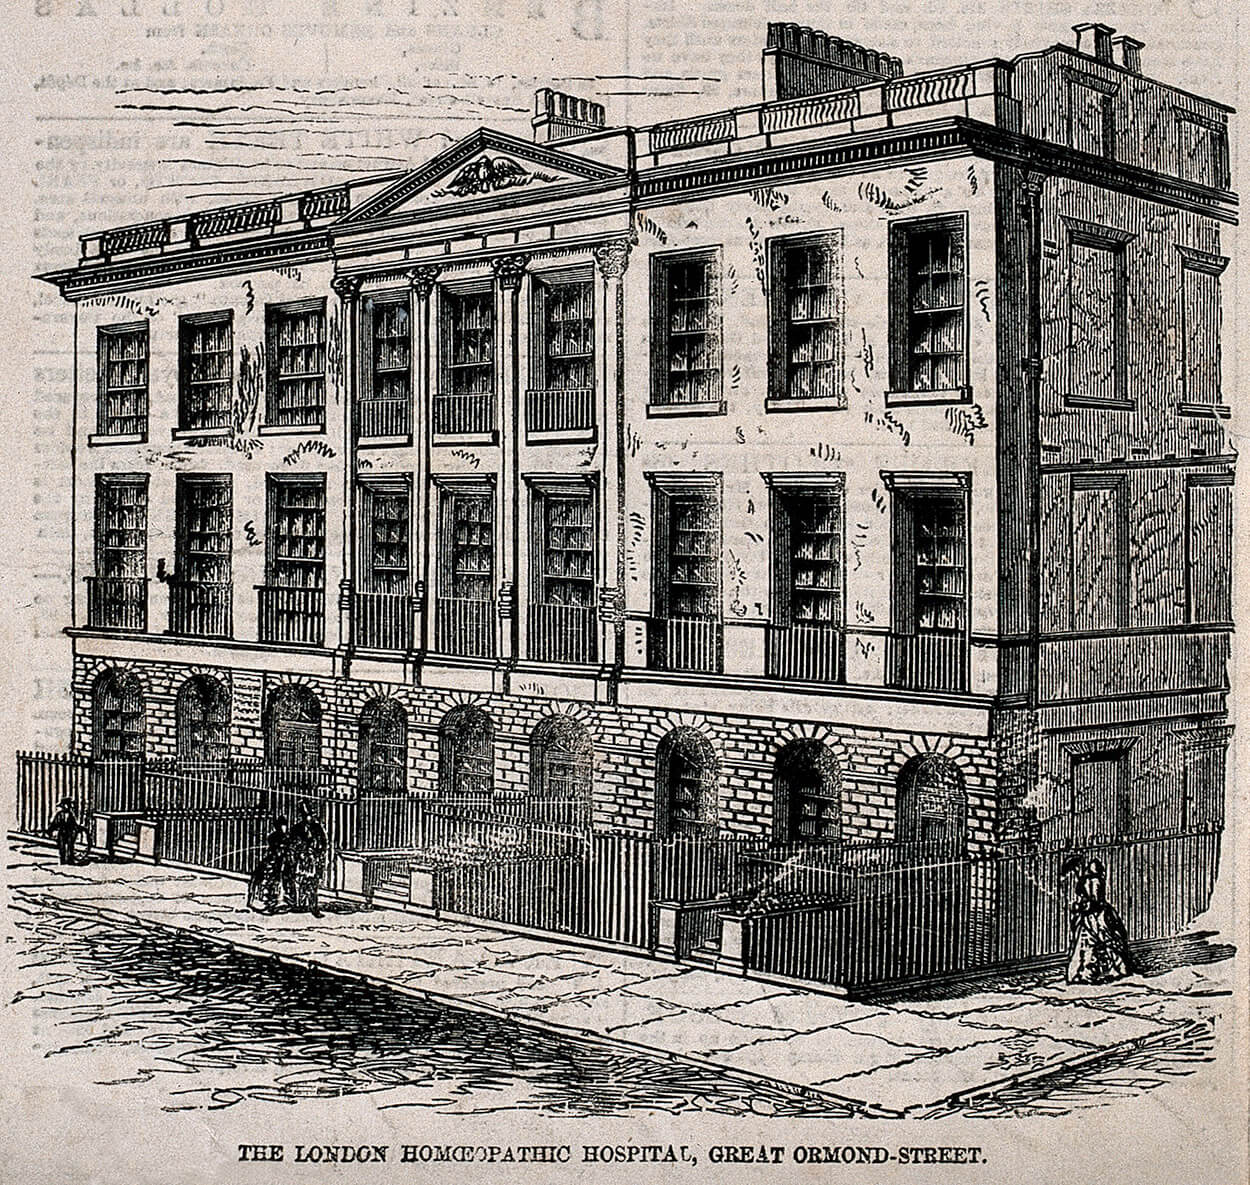 Royal London Homeopathic Hospital